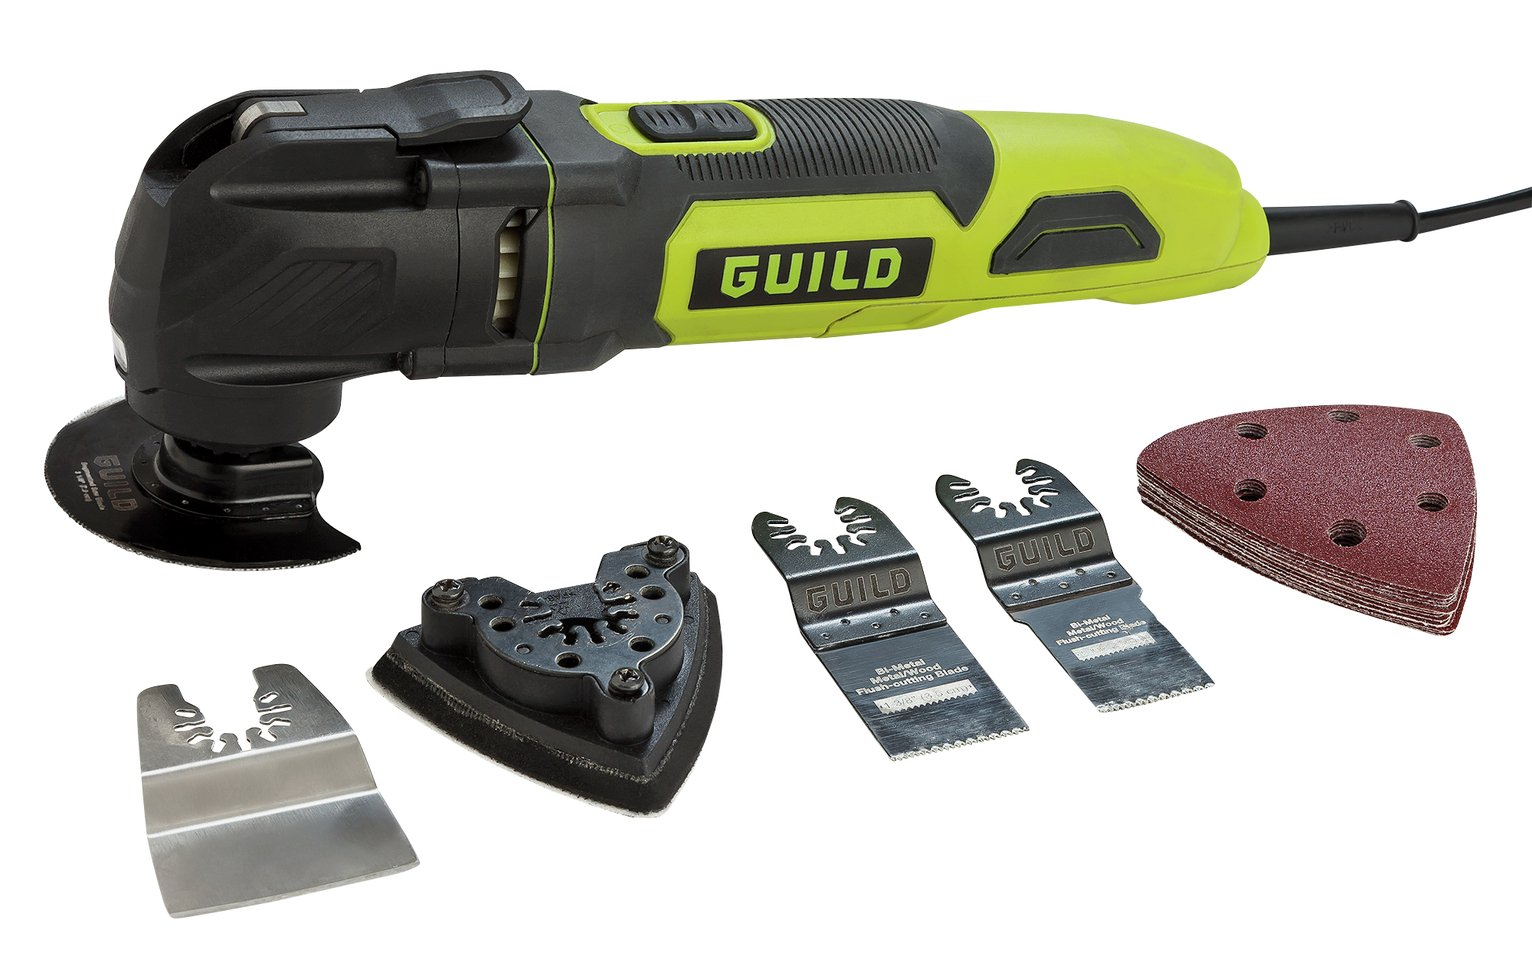 Guild 3-in-1 Multi-Tool with 20 Accessories - 300W